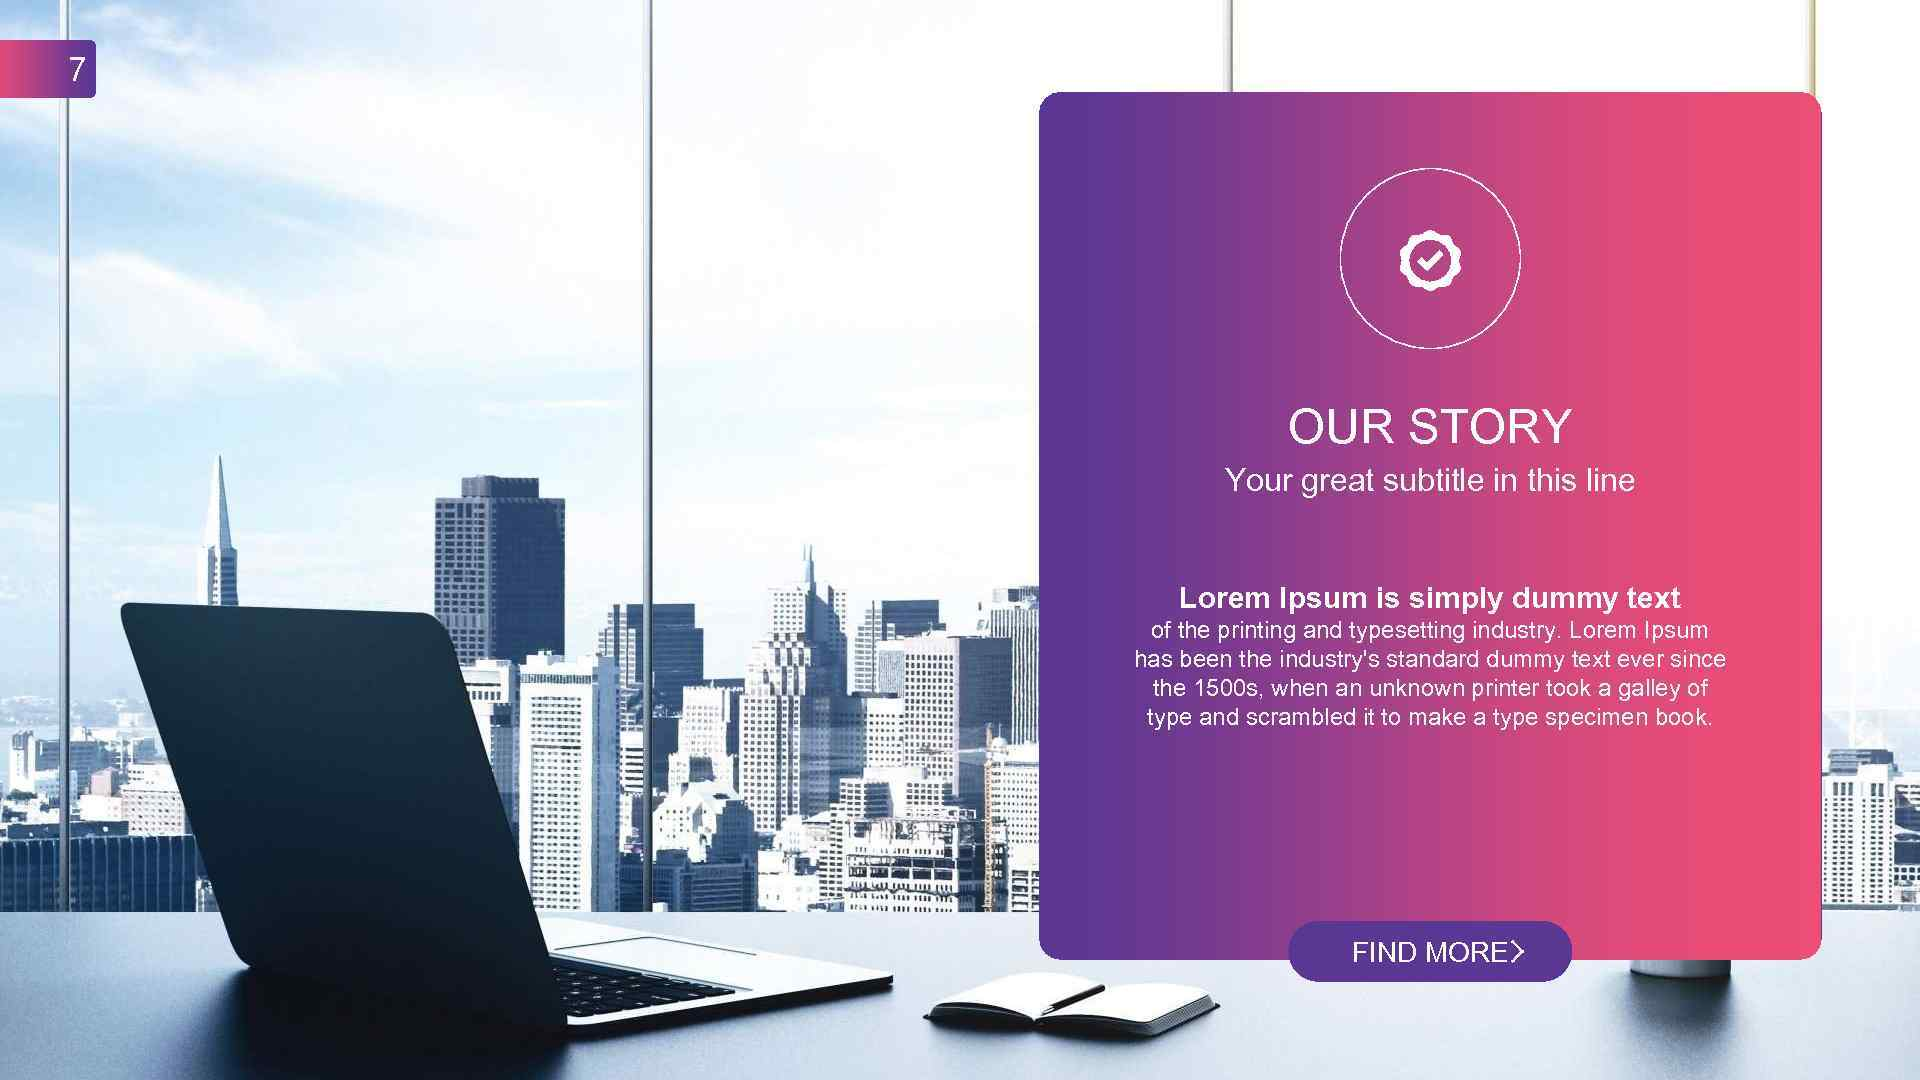 7 OUR STORY Your great subtitle in this line Lorem Ipsum is simply dummy